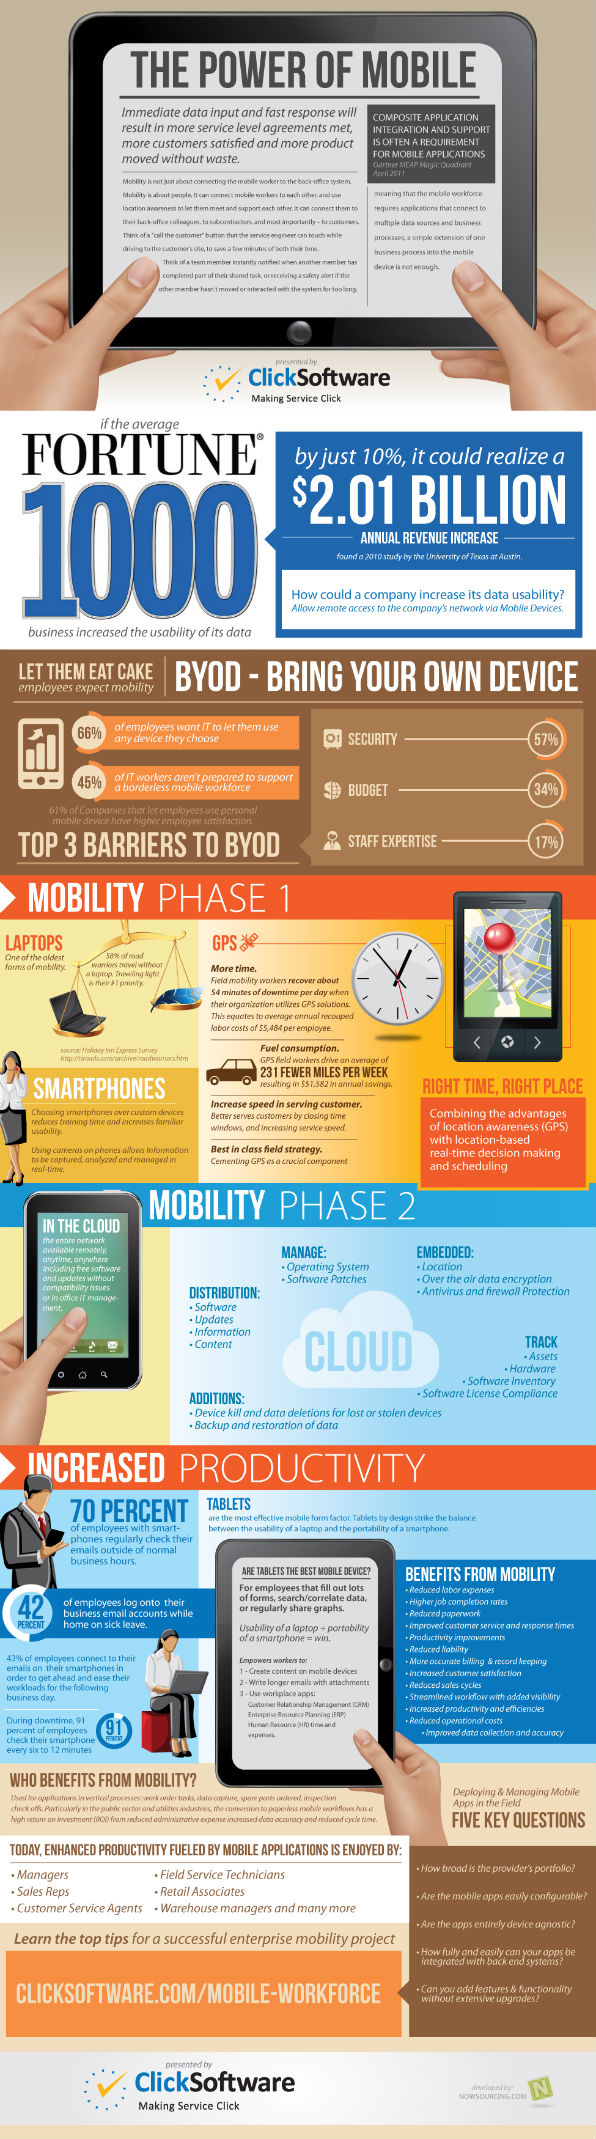 mobile workforce trends infographic